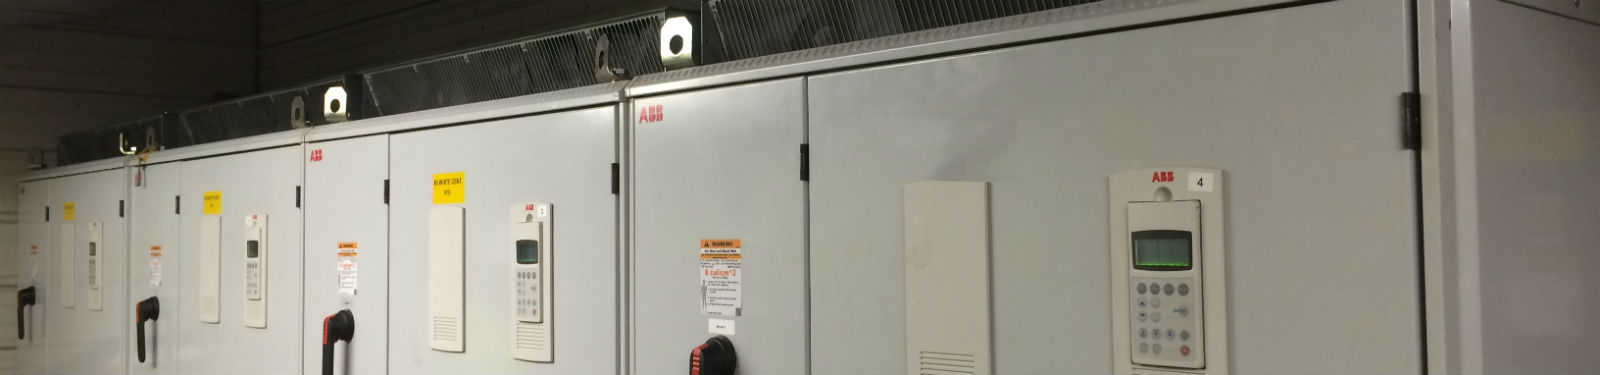 Case Study – Thermal Oxidizer Fan